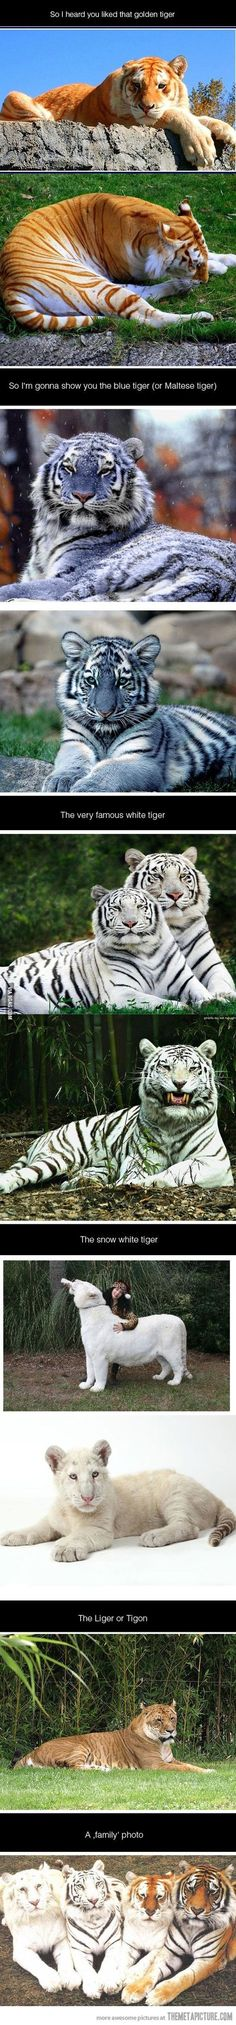 So I heard you like tigers…(The blue tigers apparently may or may not be real, and the pictures of them are definitely fake, but the others are real and really pretty)